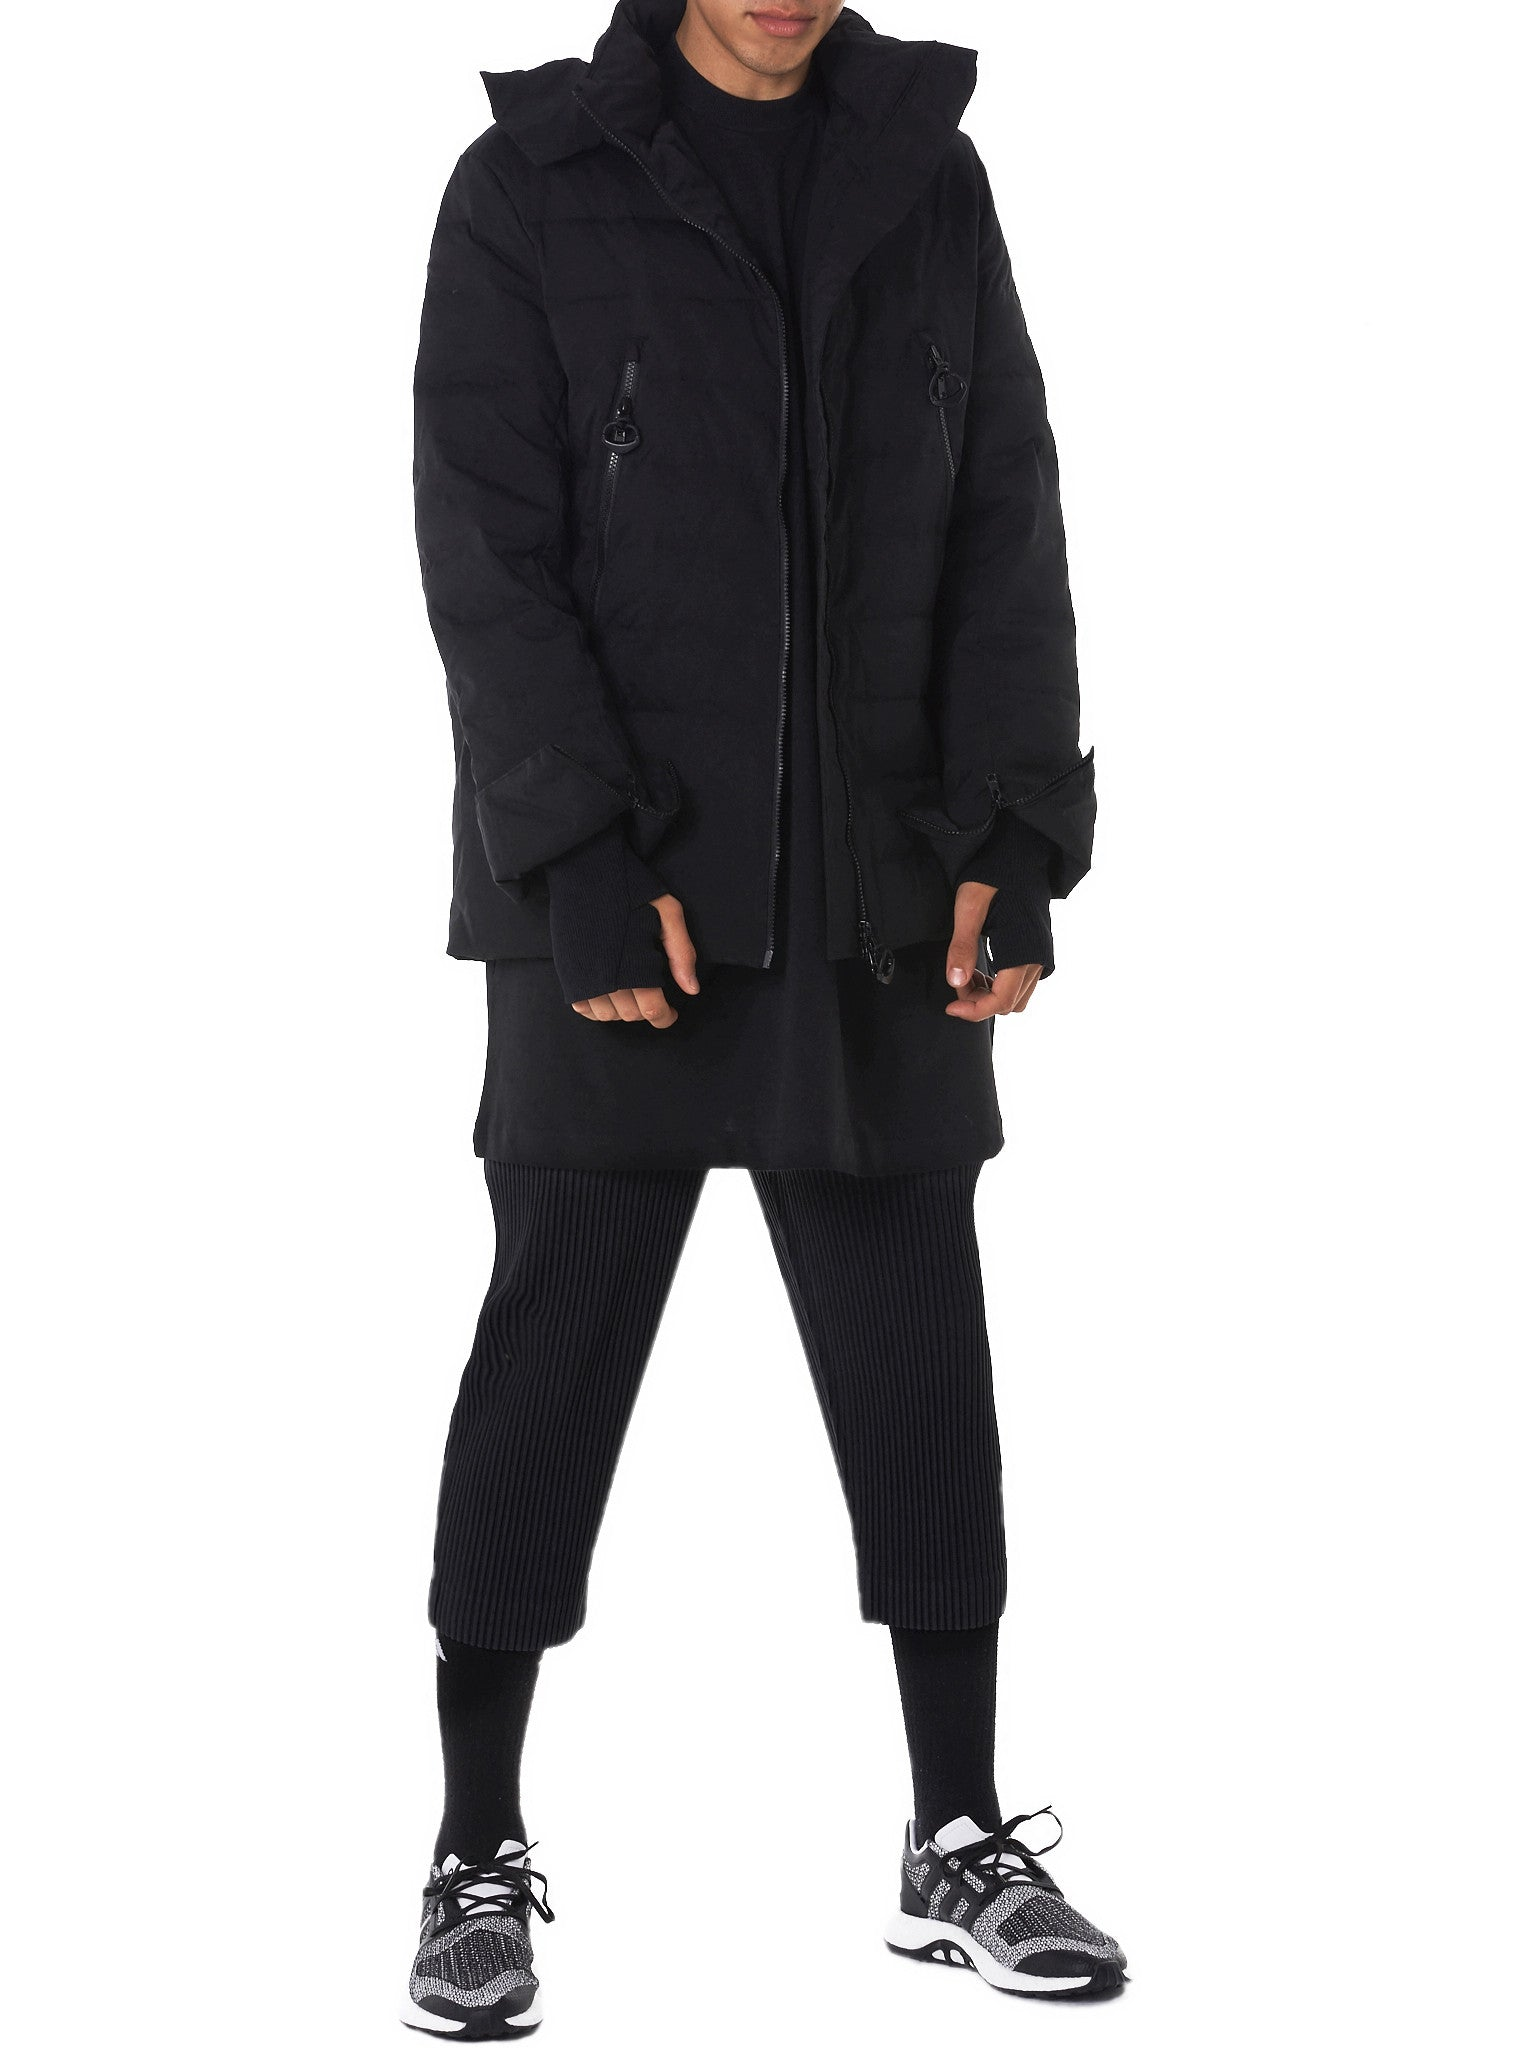 Y-3 - Hlorenzo Style View